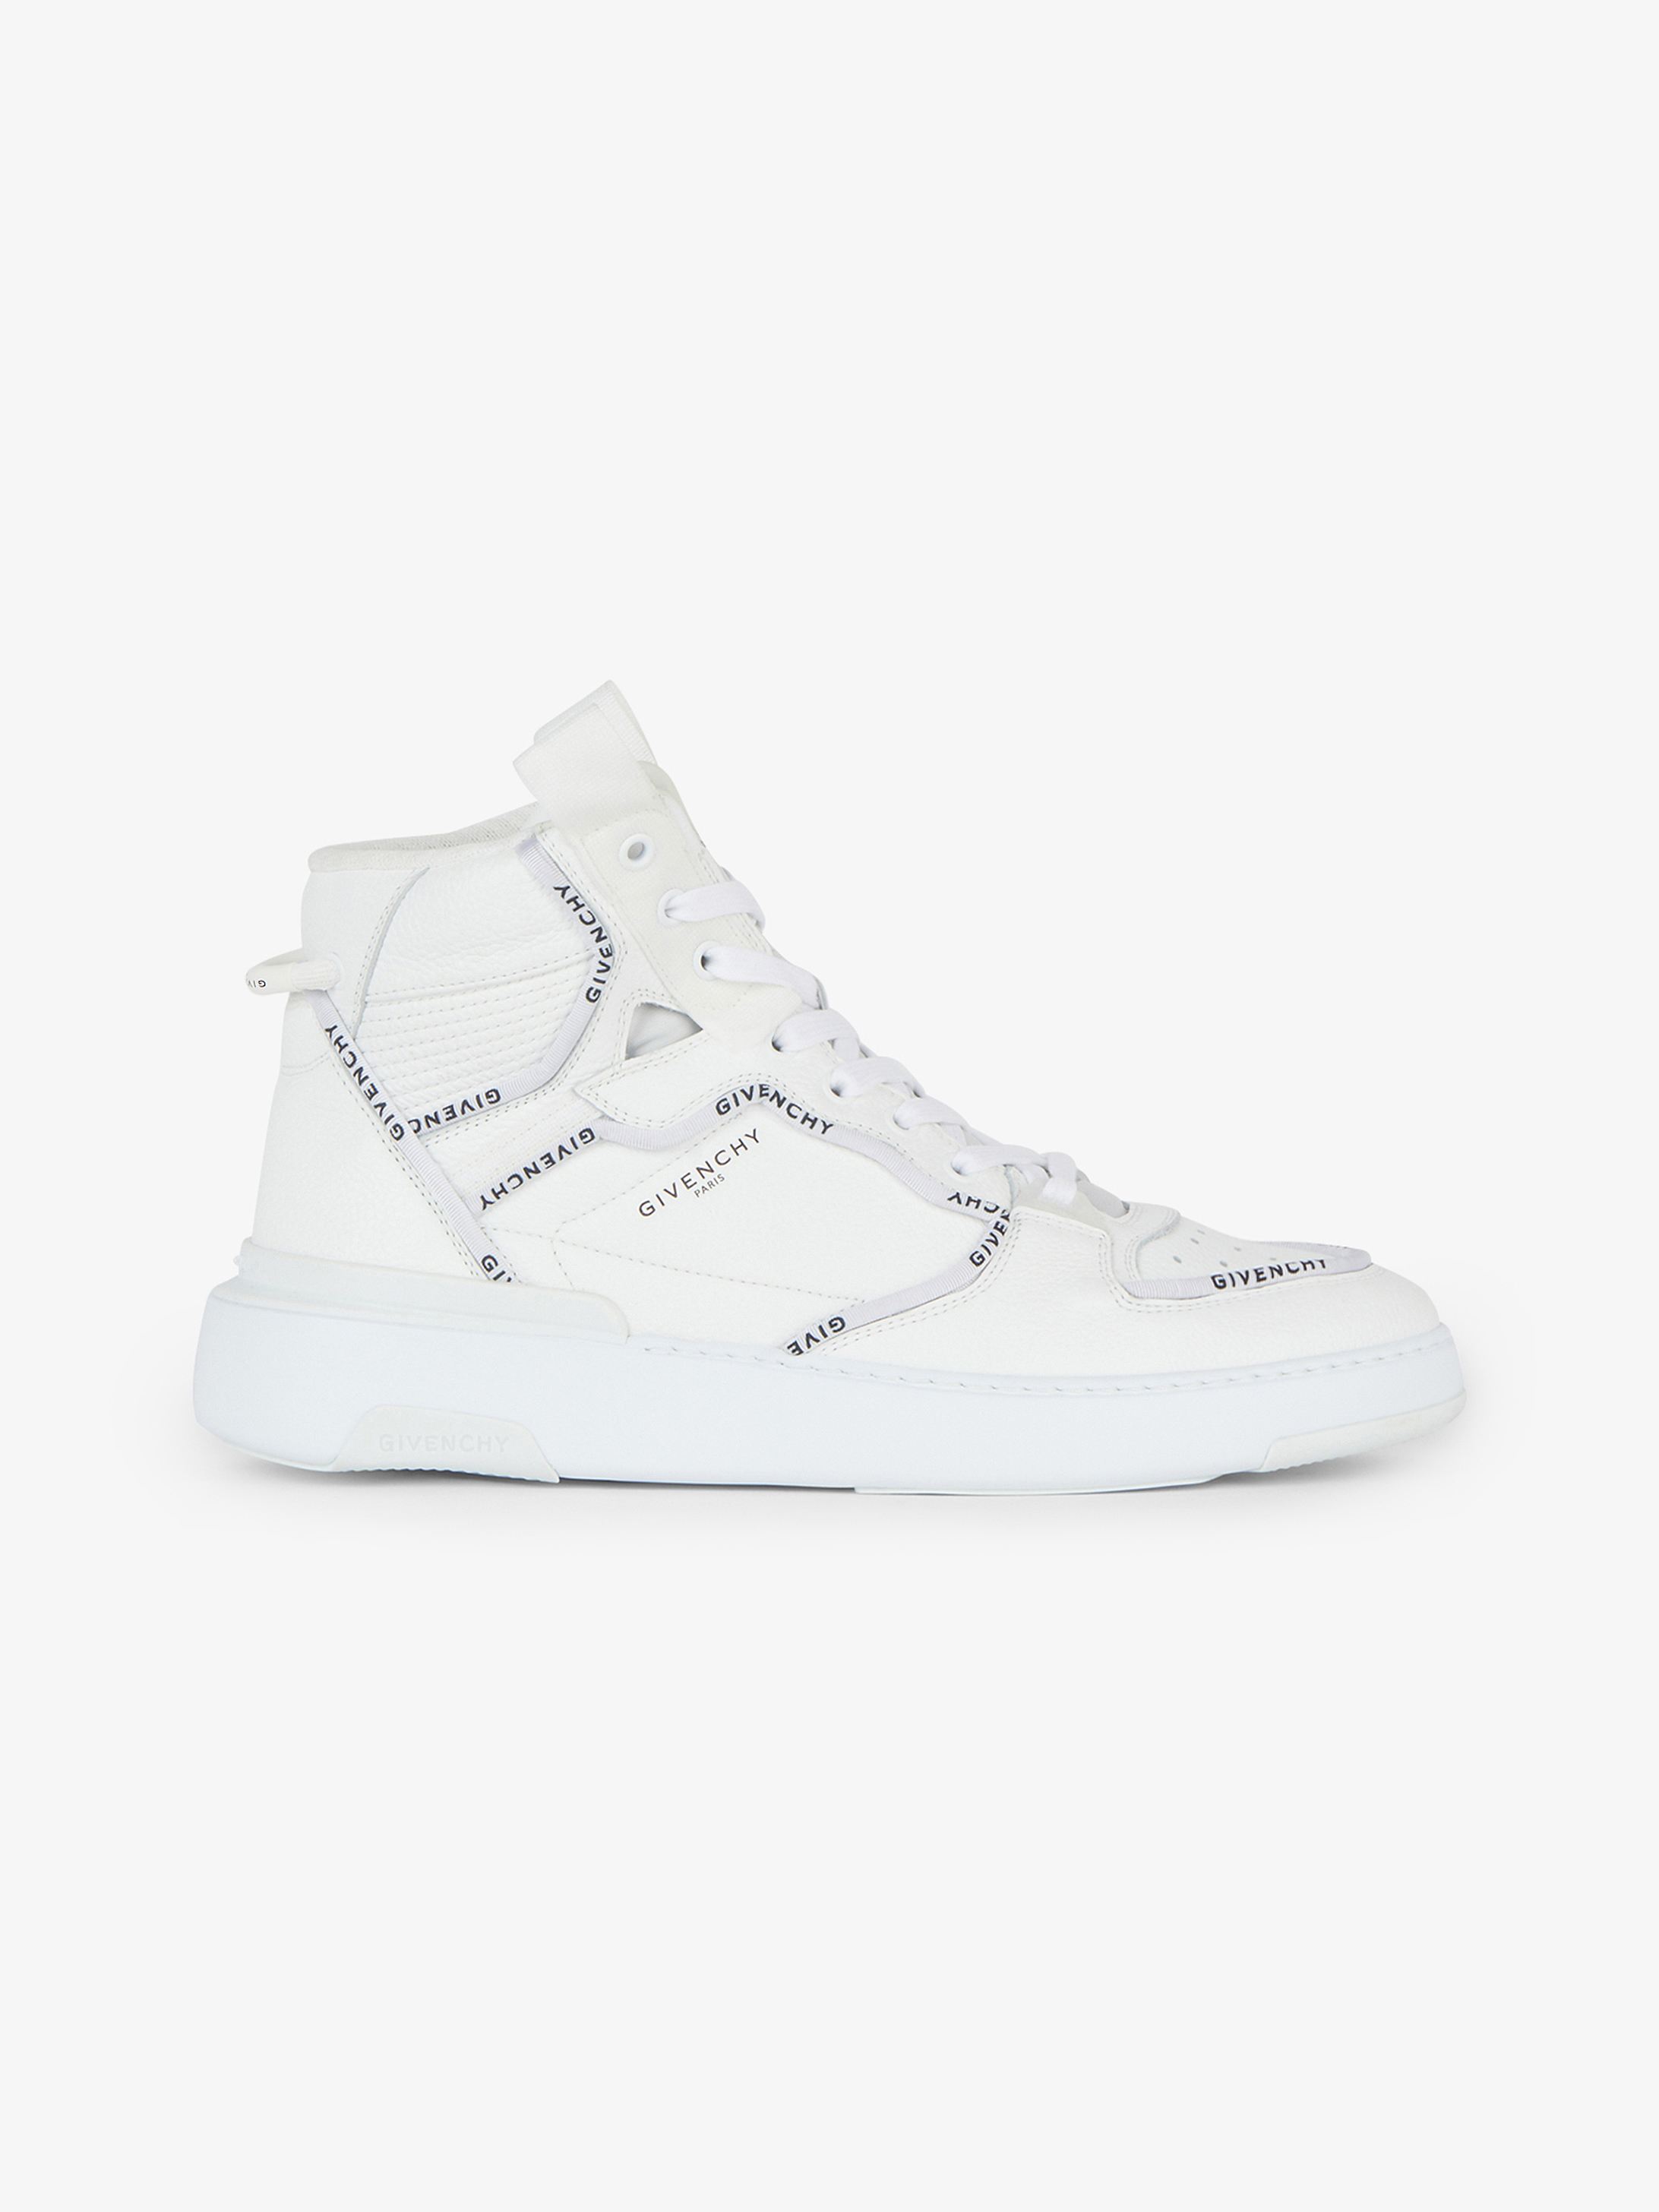 GIVENCHY wing mid sneakers in leather with pipping